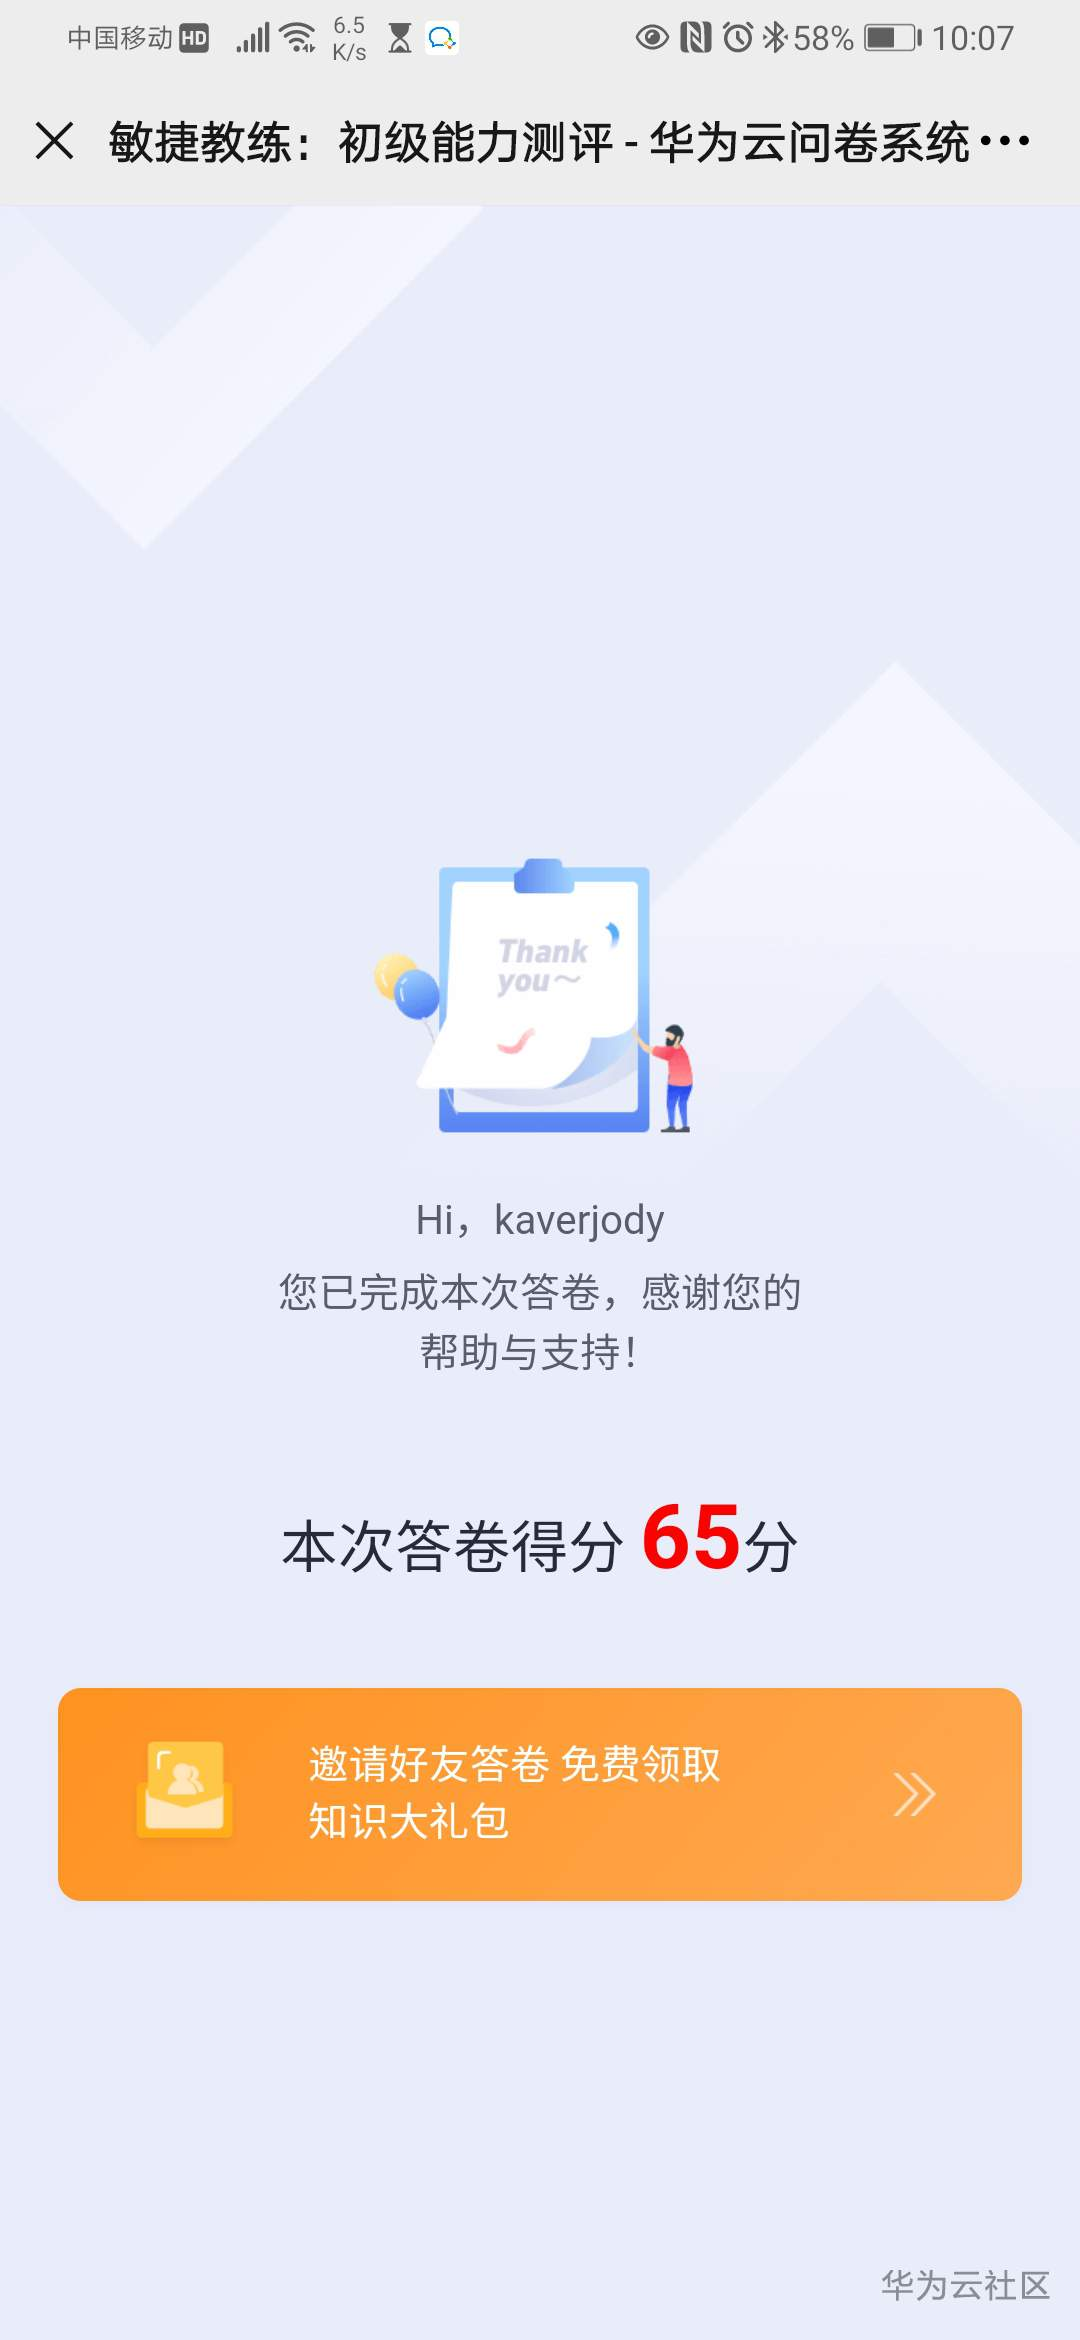 Screenshot_20201113_220704_com.tencent.mm.jpg